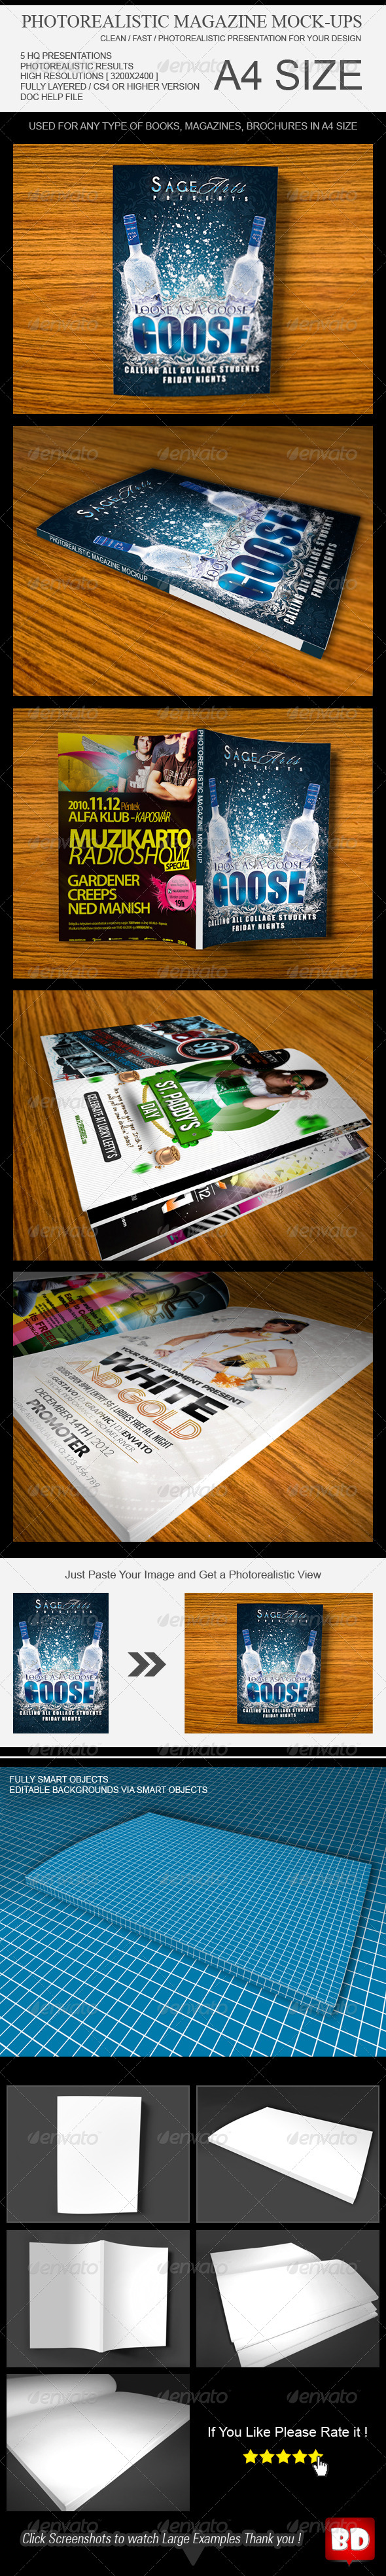 GraphicRiver Photo Realistic Magazine Mockup 6603523